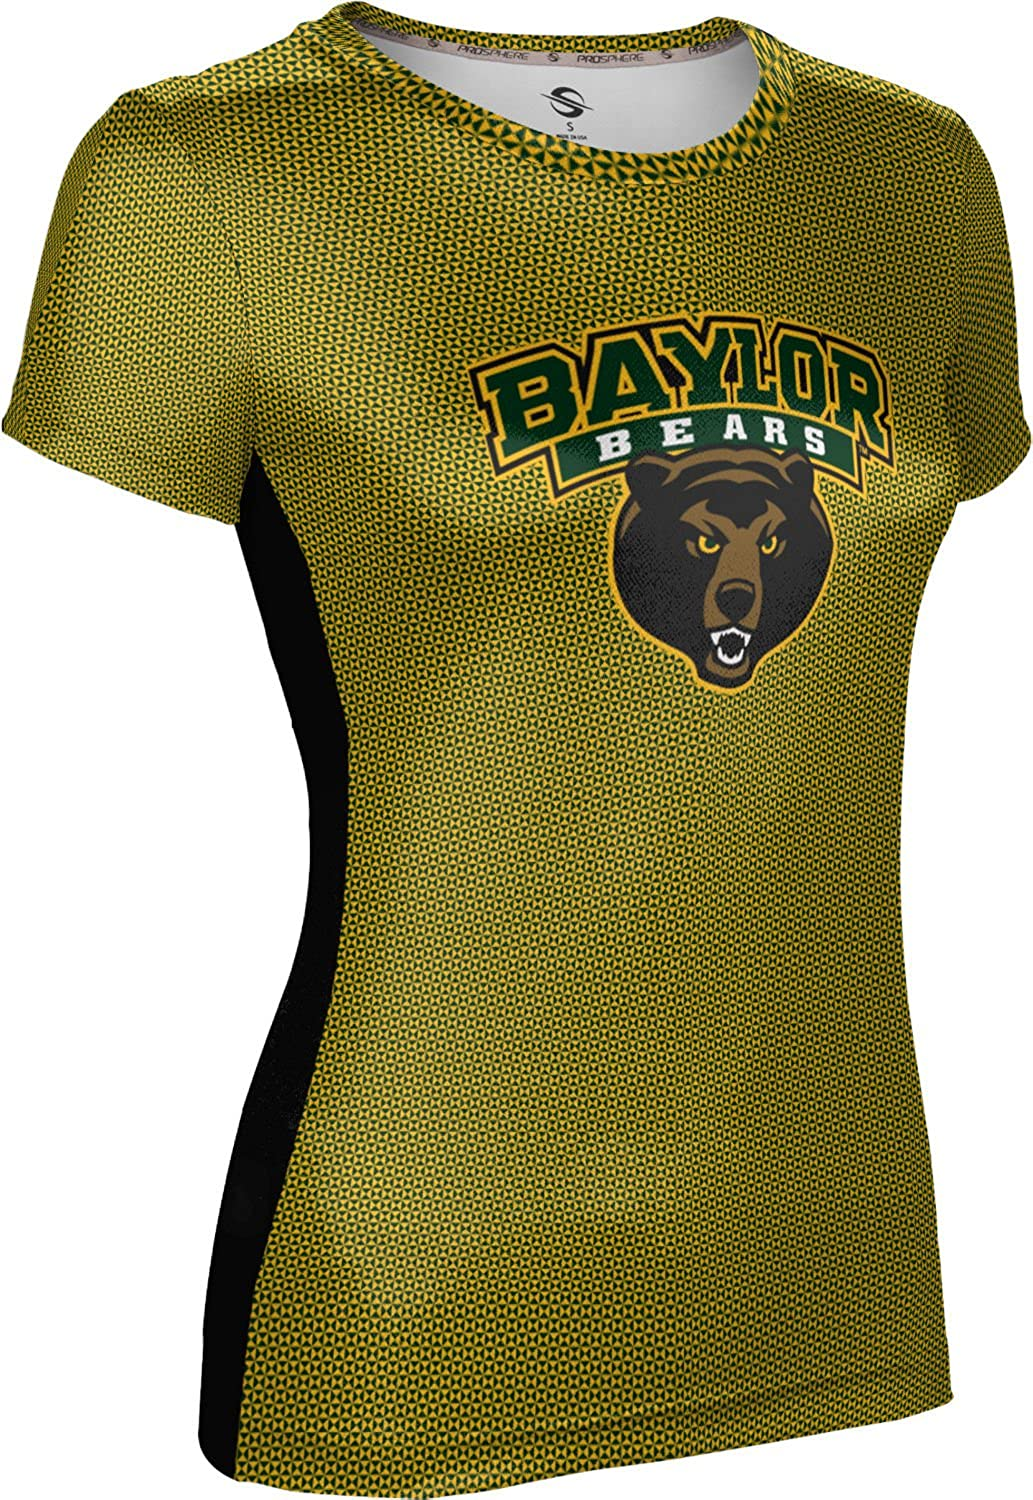 Embrace ProSphere Baylor University Girls Performance T-Shirt